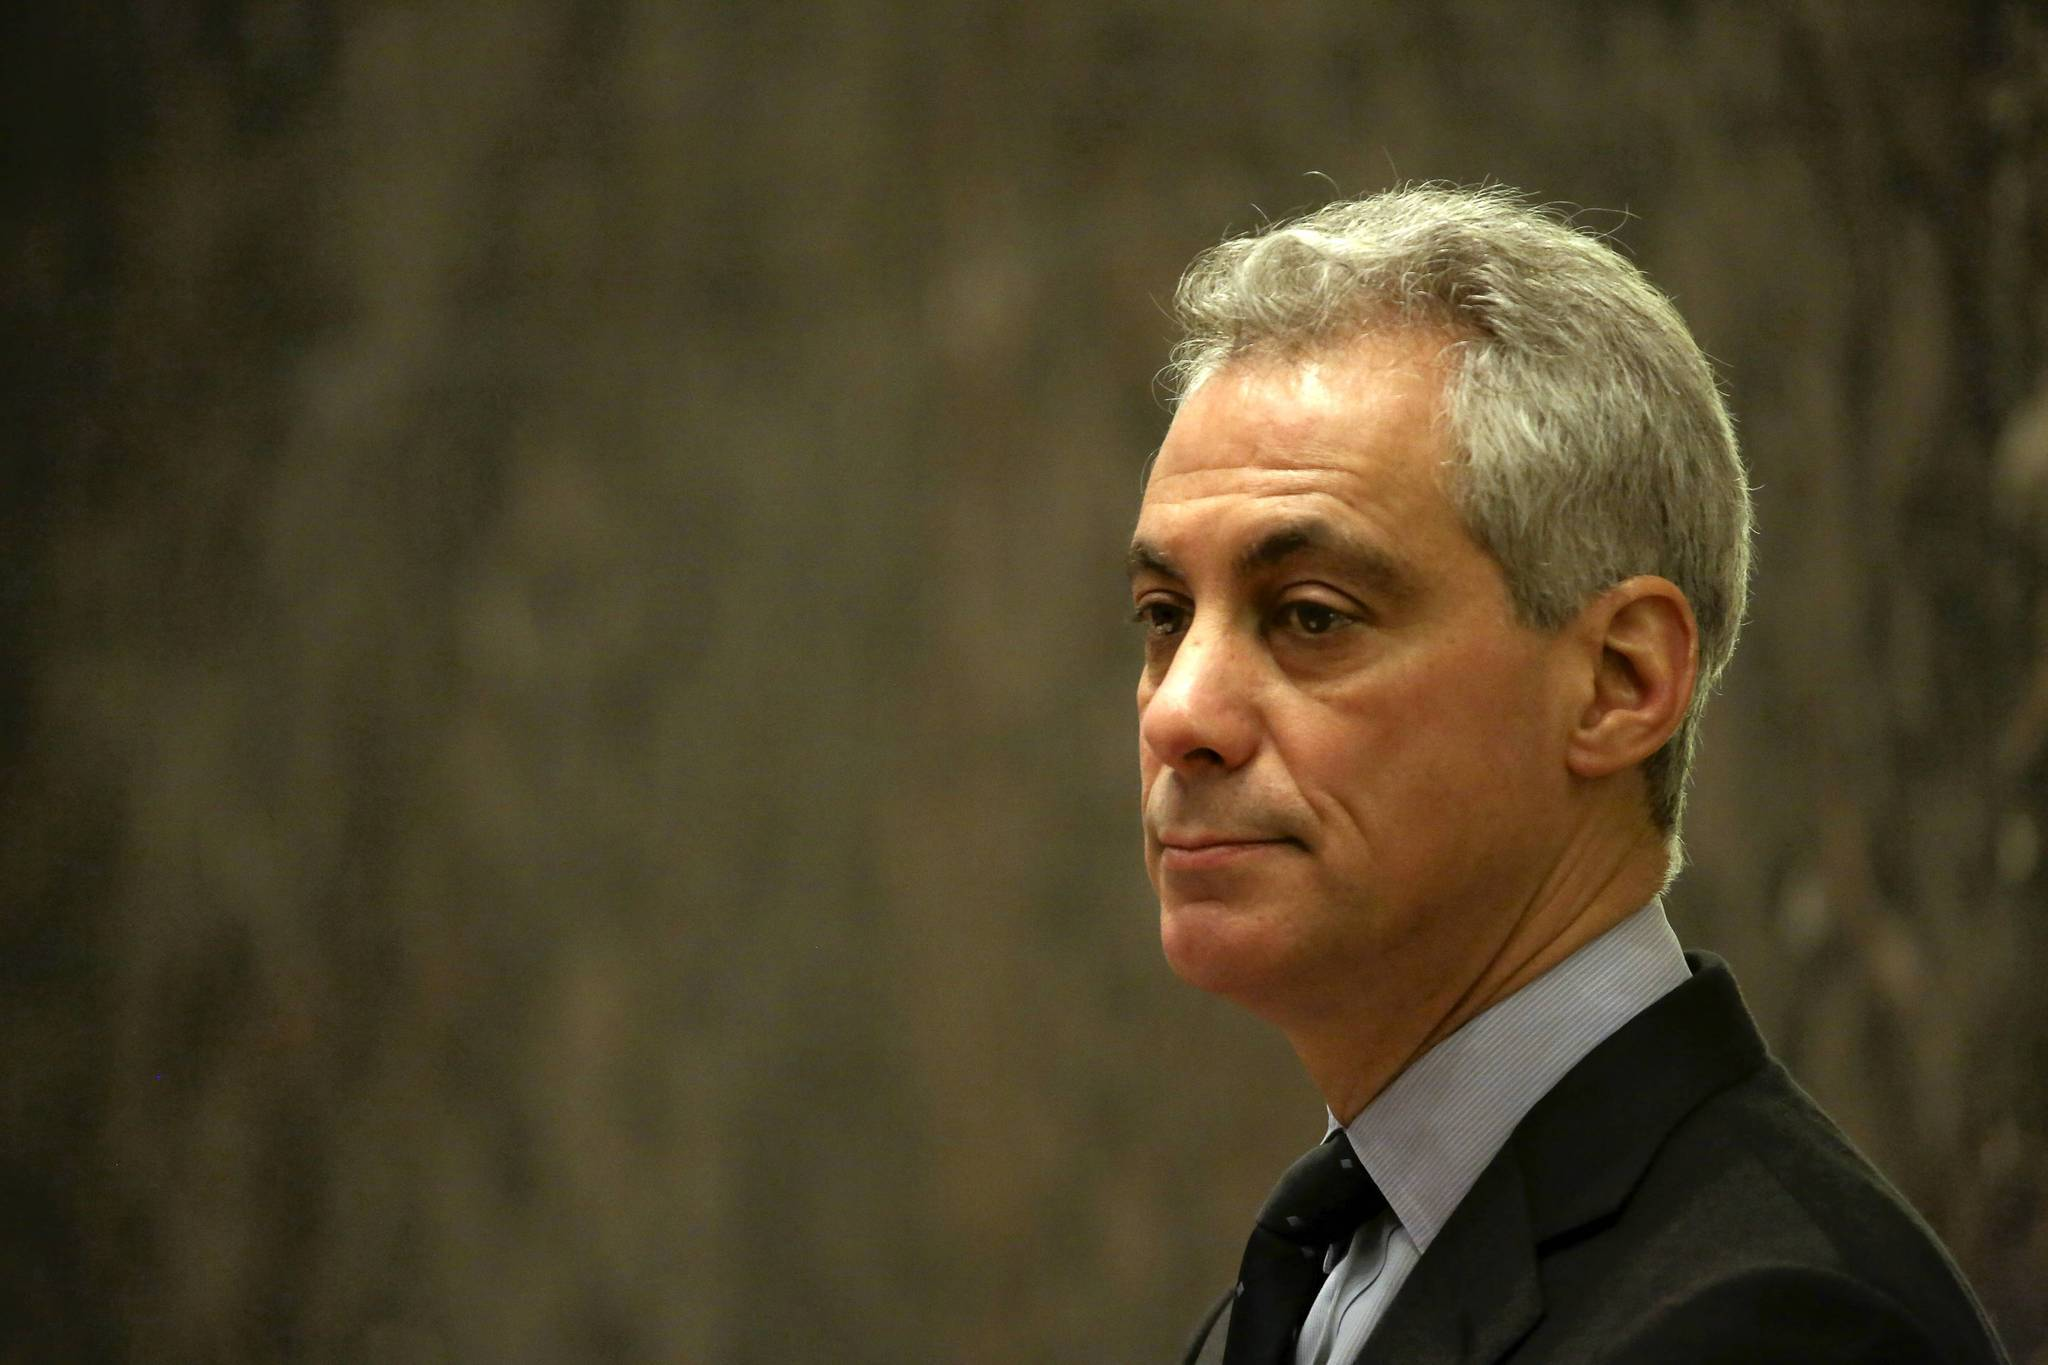 Under Mayor Rahm Emanuel's proposal, the owner of a $250,000 home would pay $50 more a year starting in 2016. After five years, the homeowner would be paying an extra $250 a year.